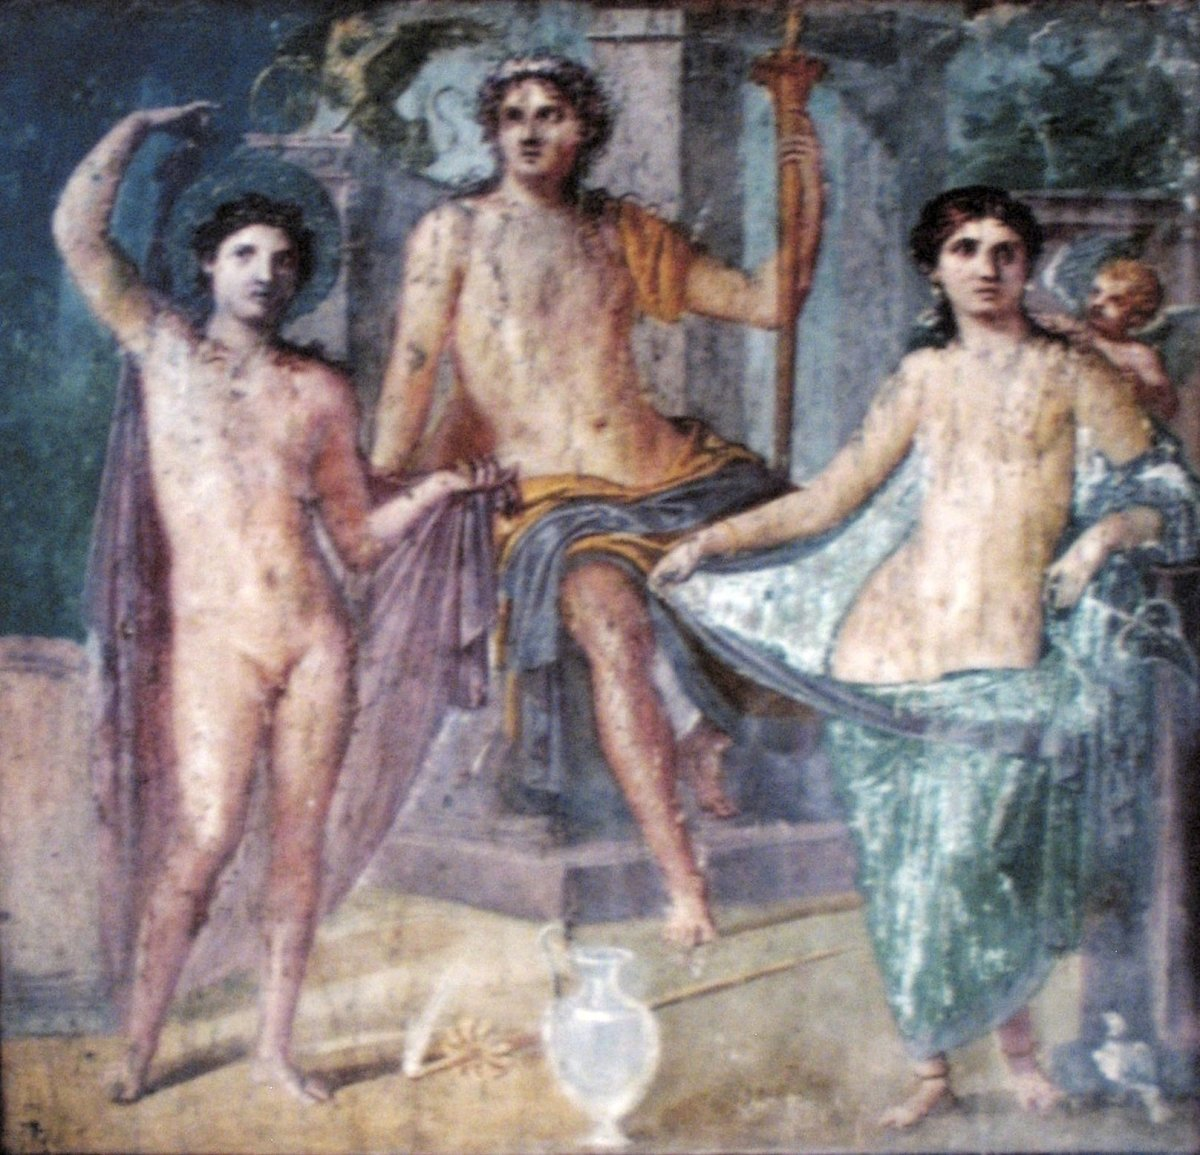 Aphrodite/Venus, goddess of love and beauty, with Ares/Mars, god of war. Sitting enthroned in the middle is Zeus/Jupiter, king of the gods.